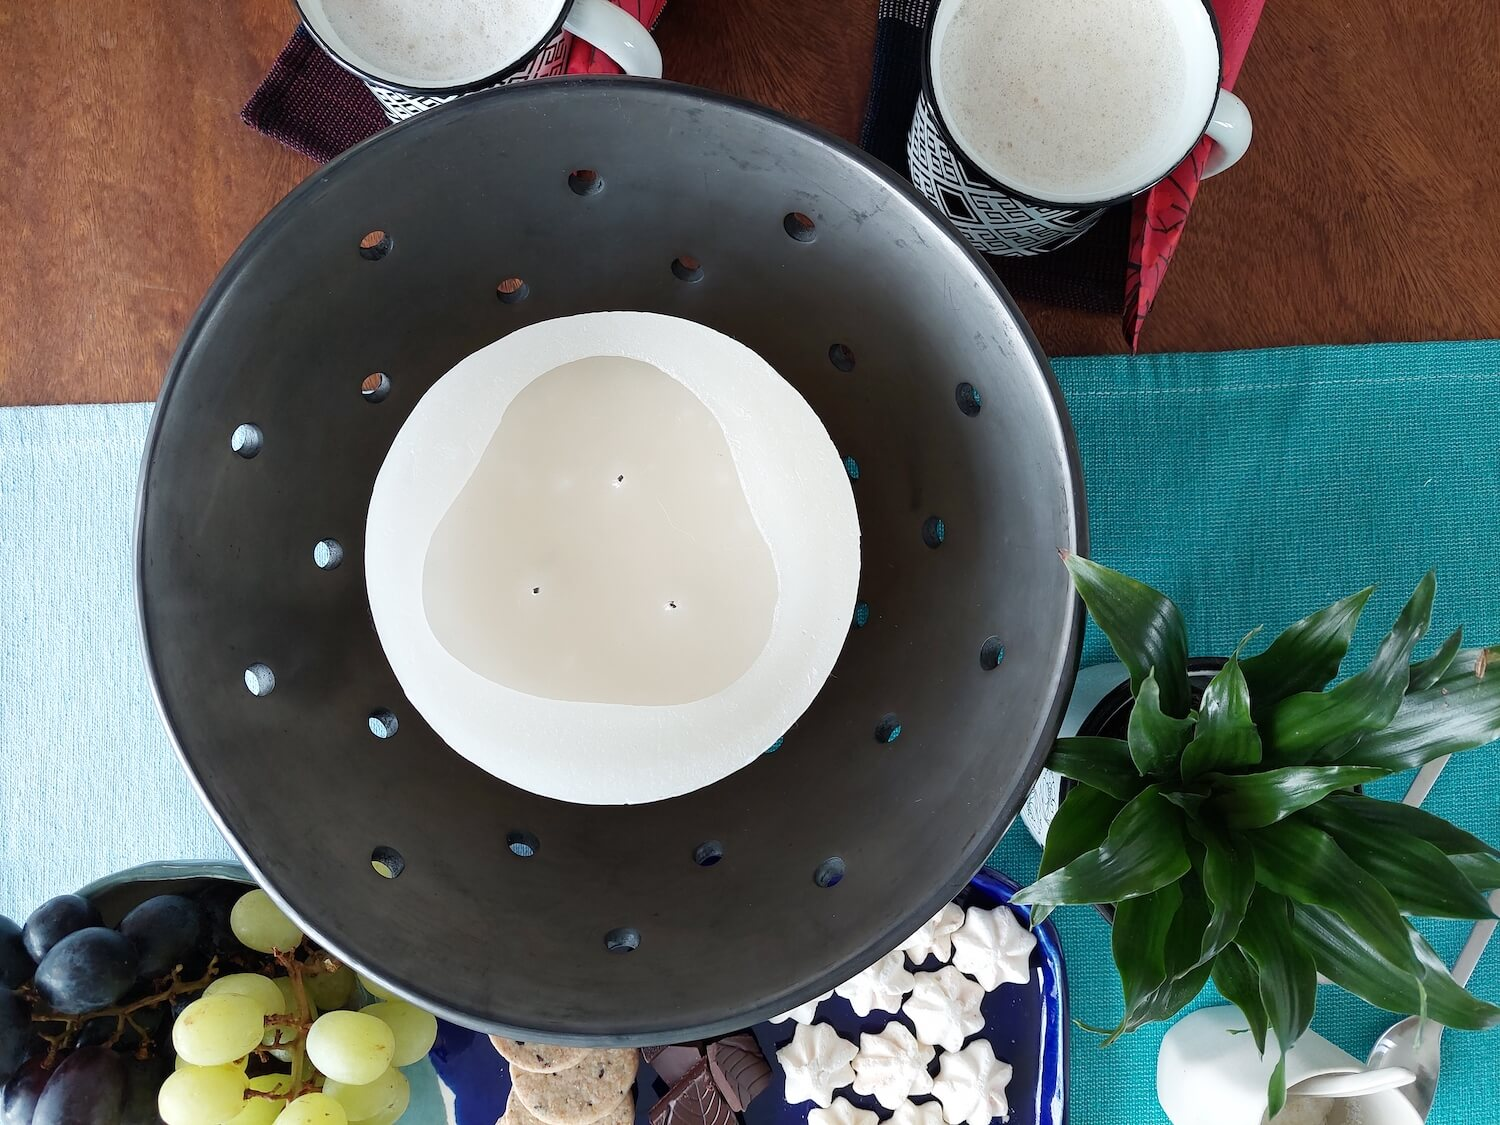 Black clay candle holder as coffee table center piece